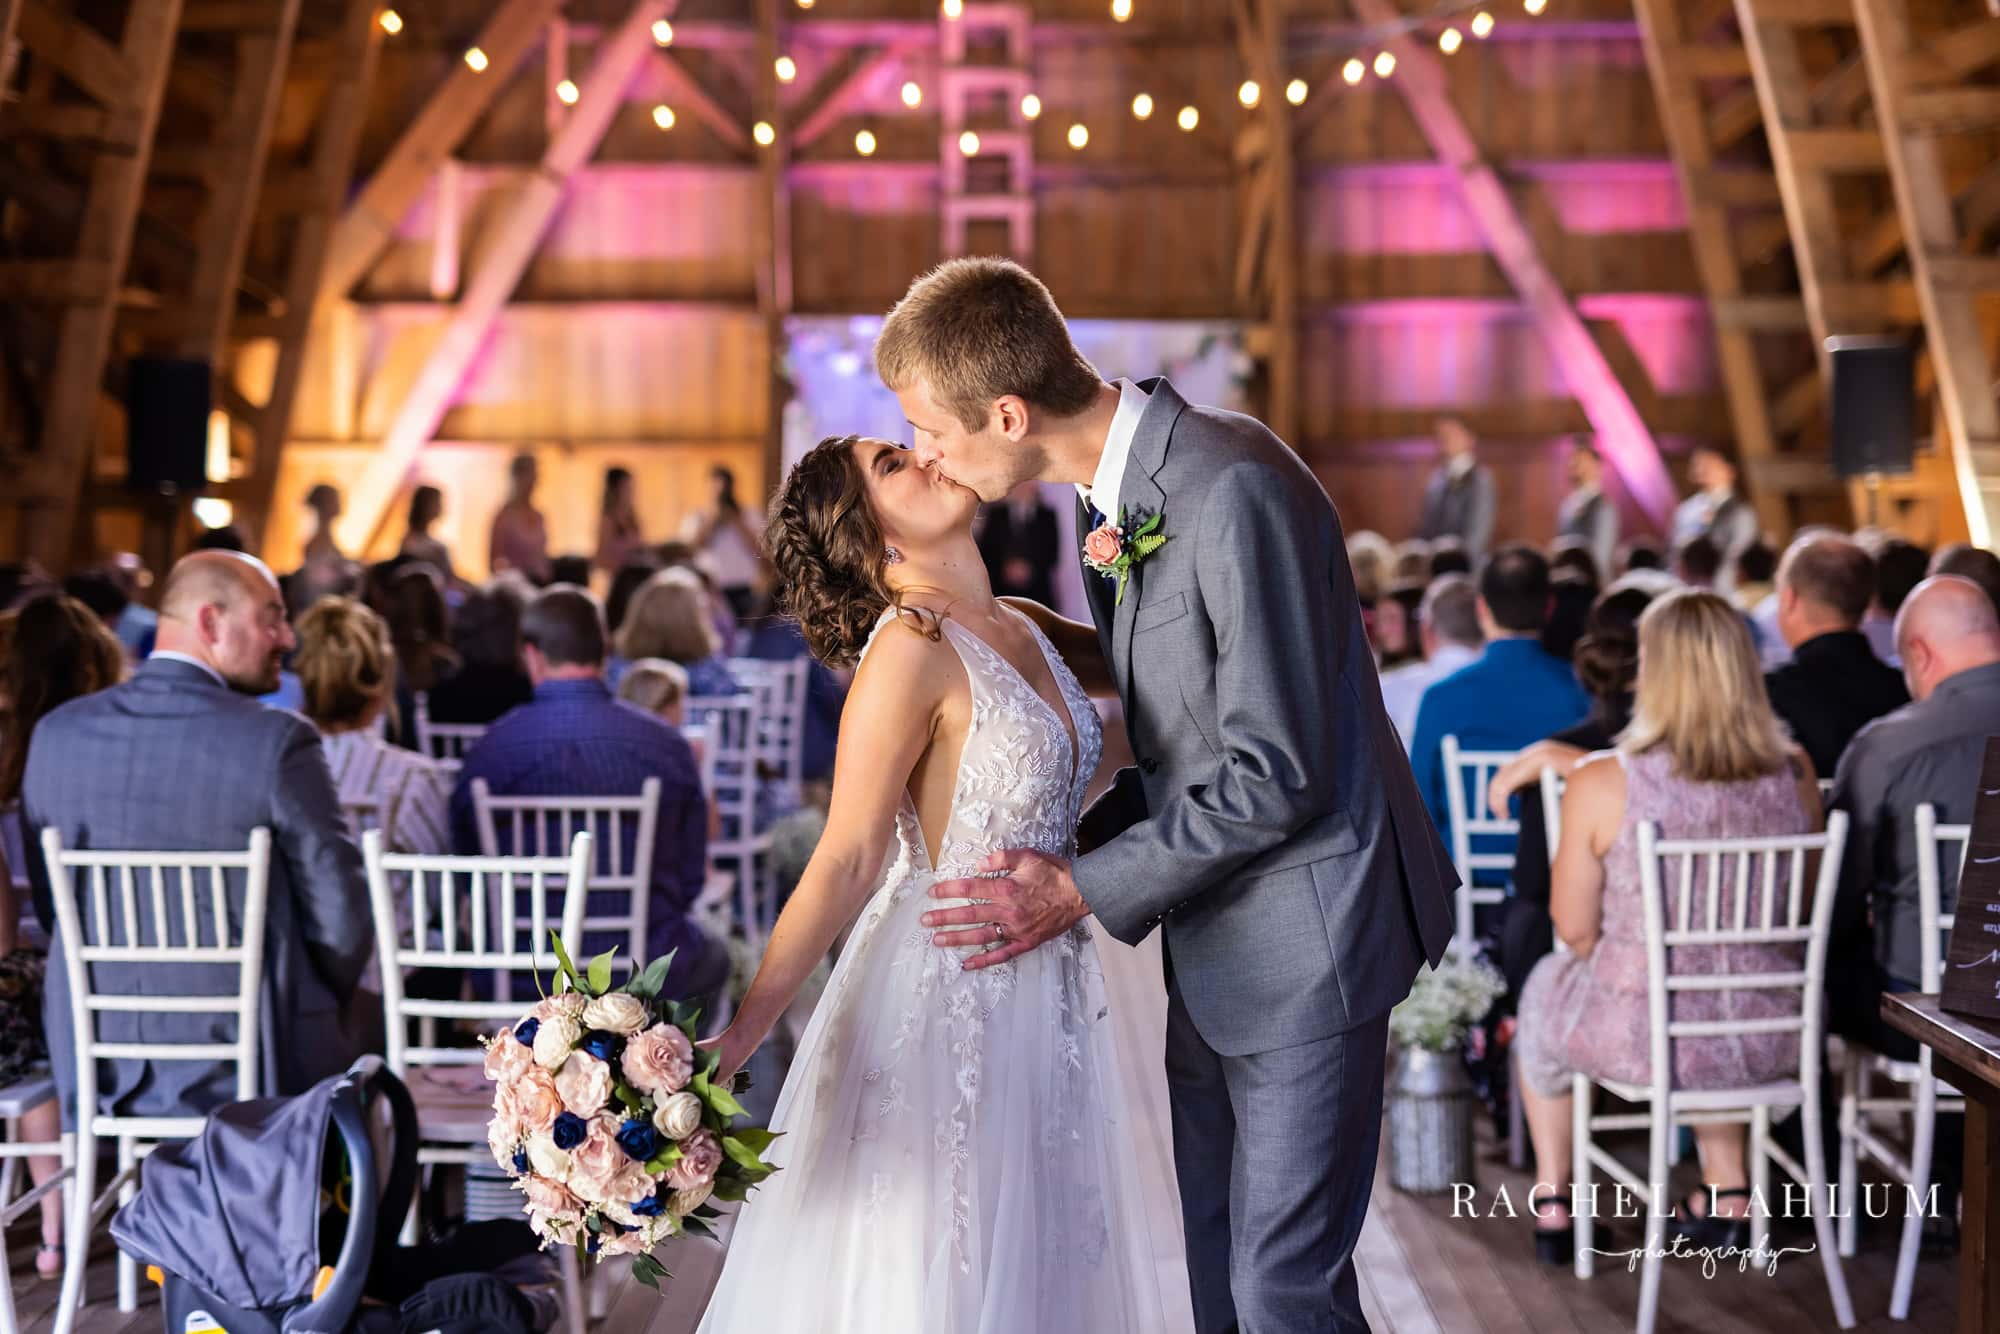 Bride and groom kiss in the barn loft aisle after ceremony at the Cottage Farmhouse.